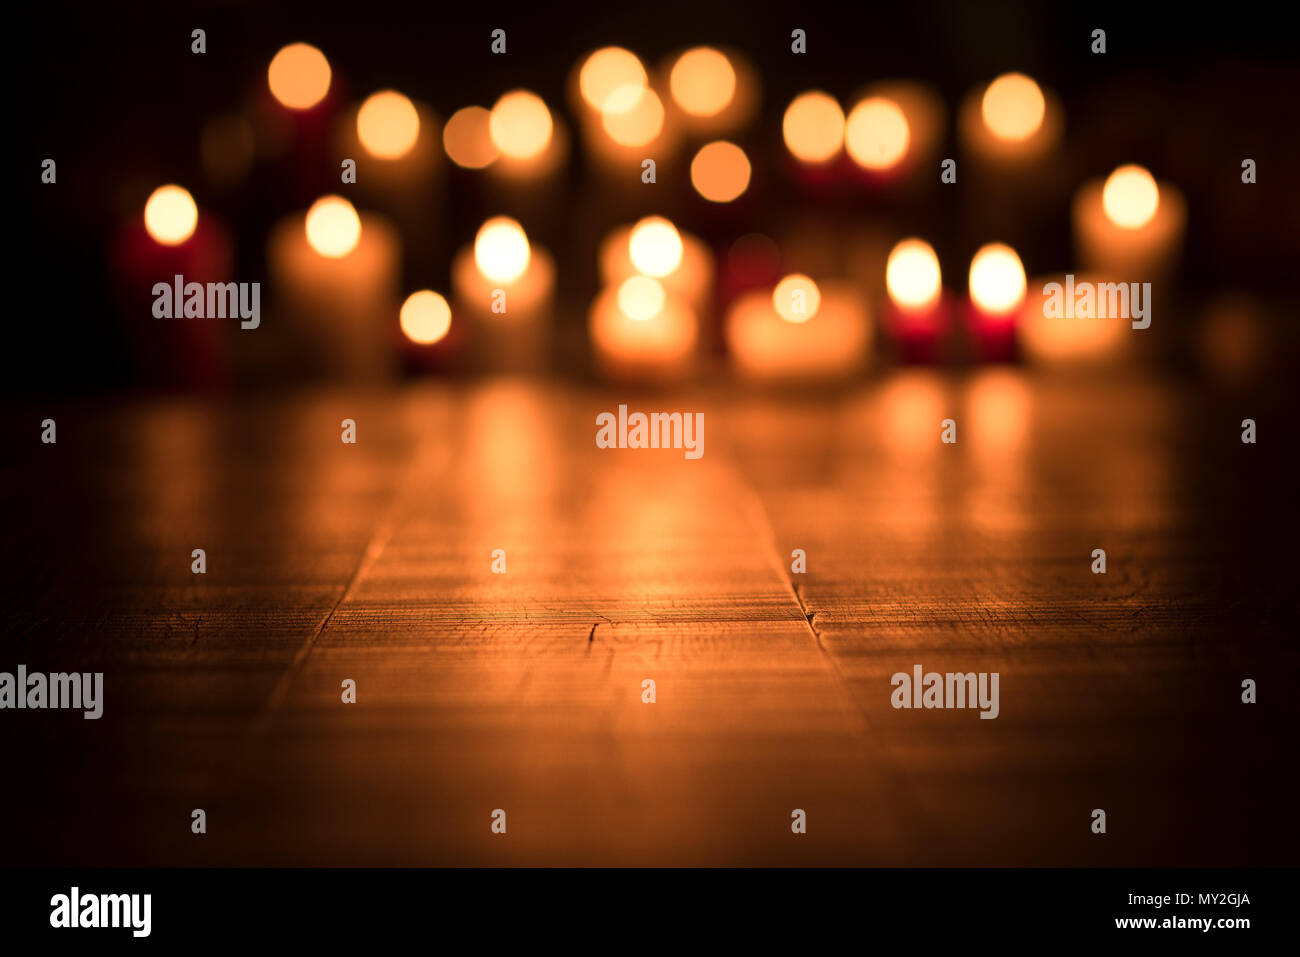 Defocused lit candles burning in the Church, spirituality and religion concept - Stock Image